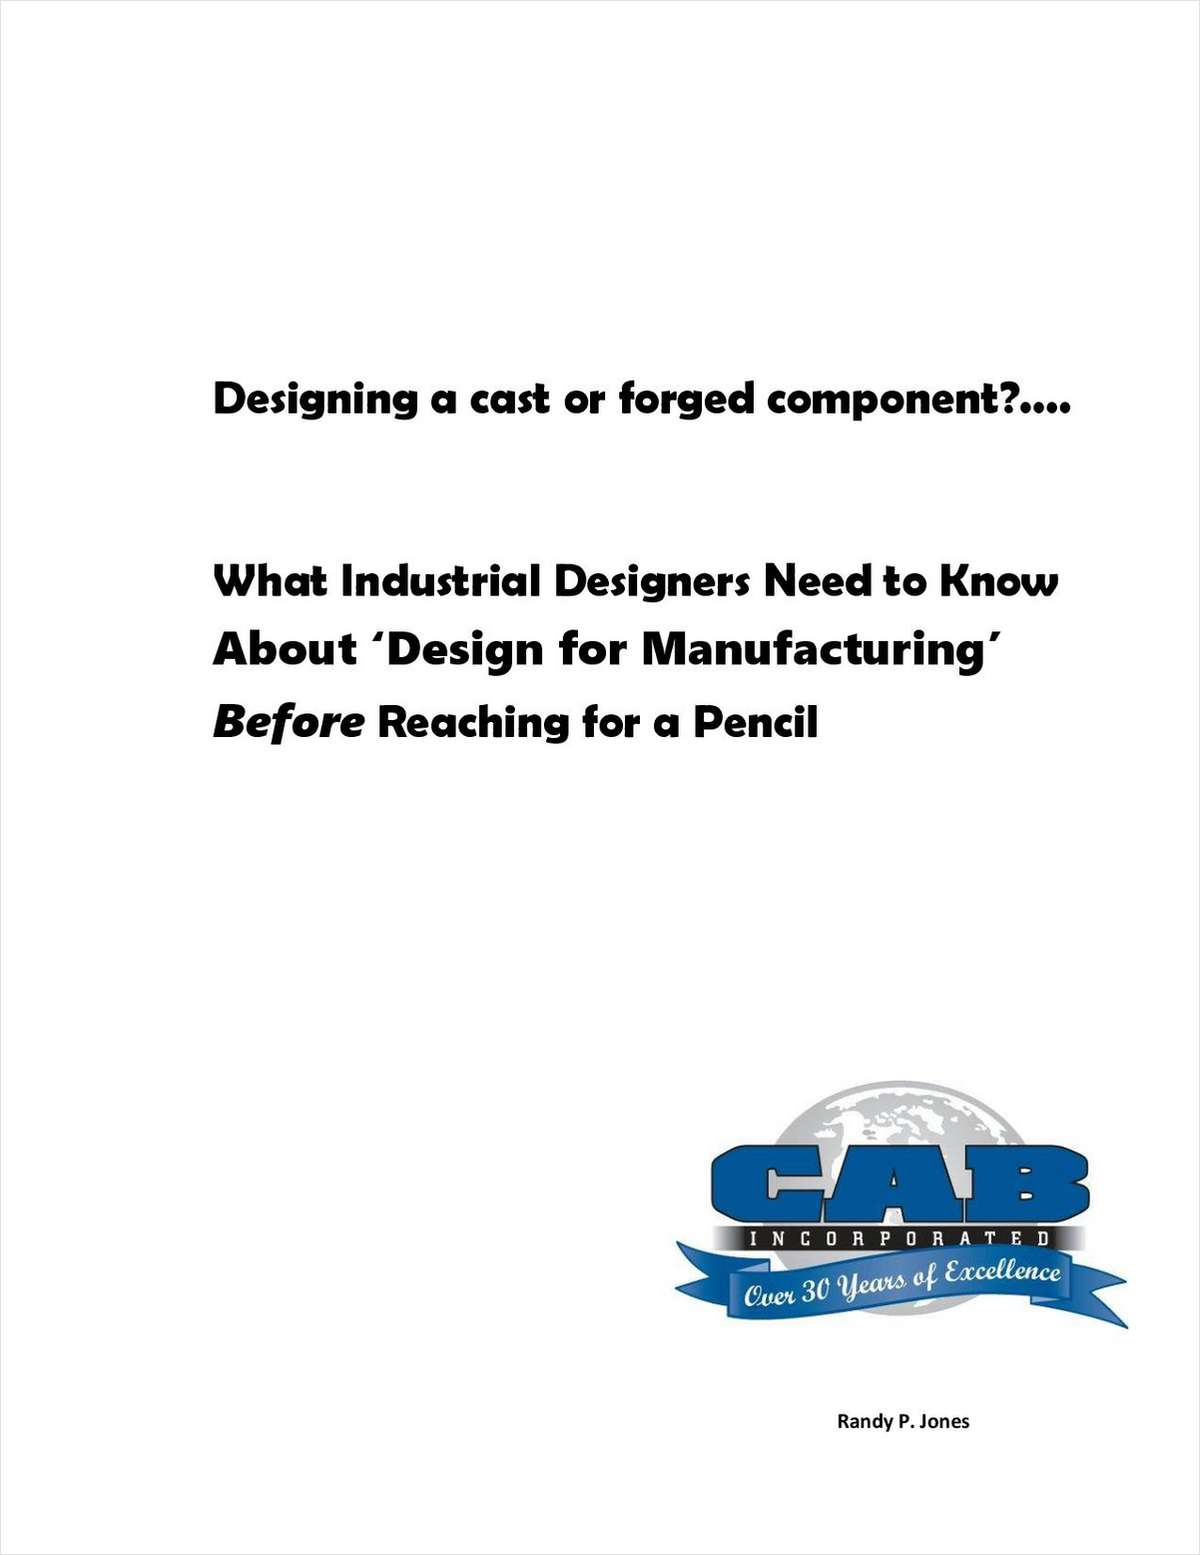 Designing a Cast or Forged Component?  What Industrial Designers Need to Know About 'Design for Manufacturing' Before Reaching for a Pencil.